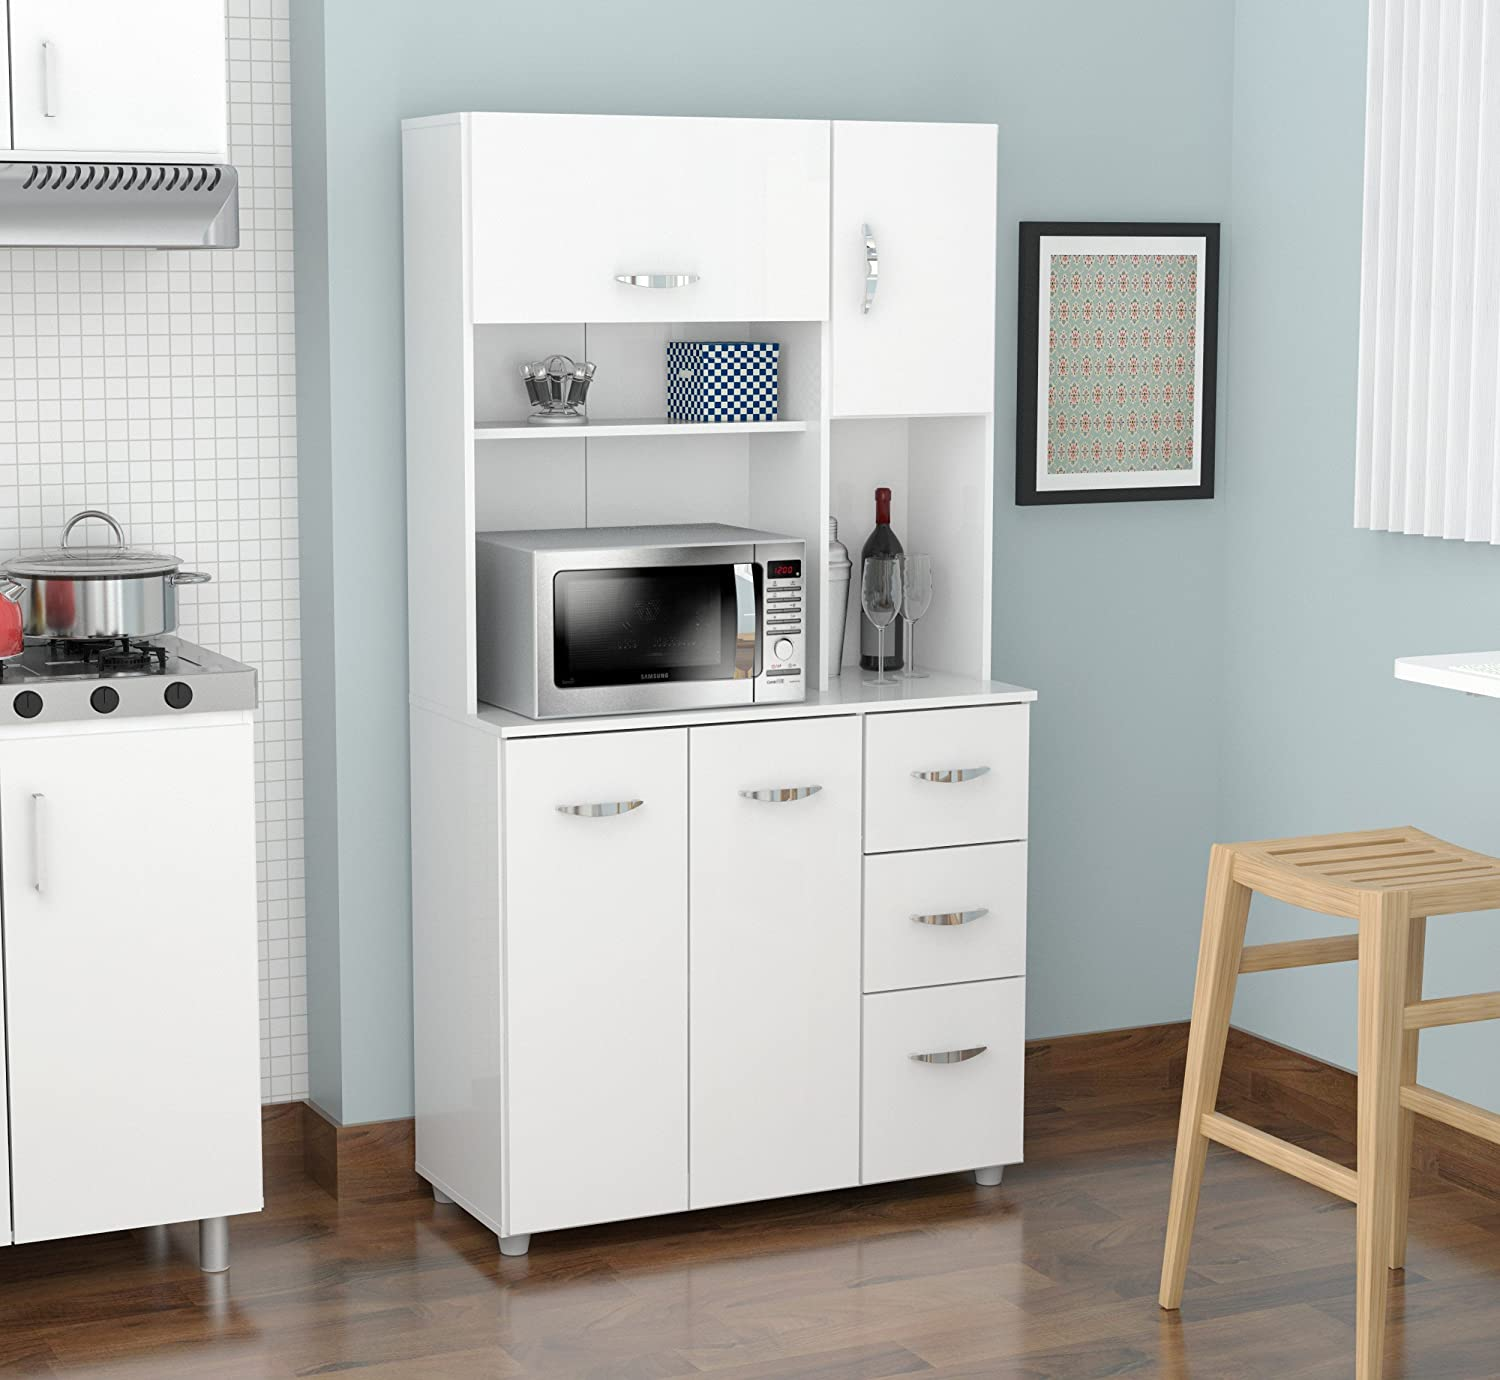 Amazon com inval america 4 door storage cabinet with microwave cart laricina white kitchen dining